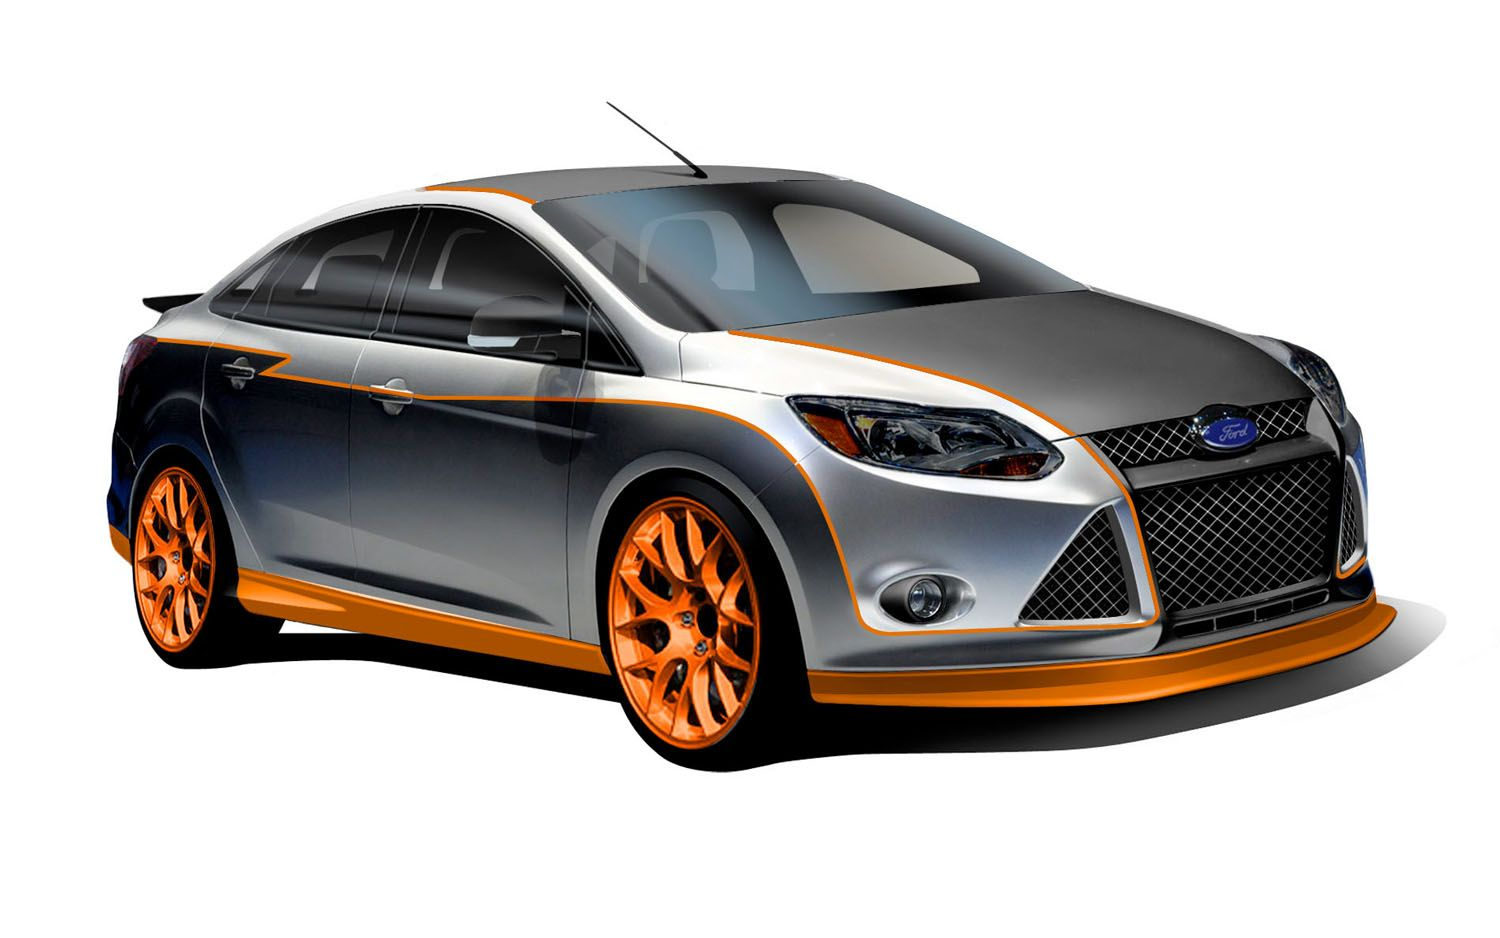 Autos im genes axel ford focus by capaldi racing 2012 for 2012 ford focus exterior accessories